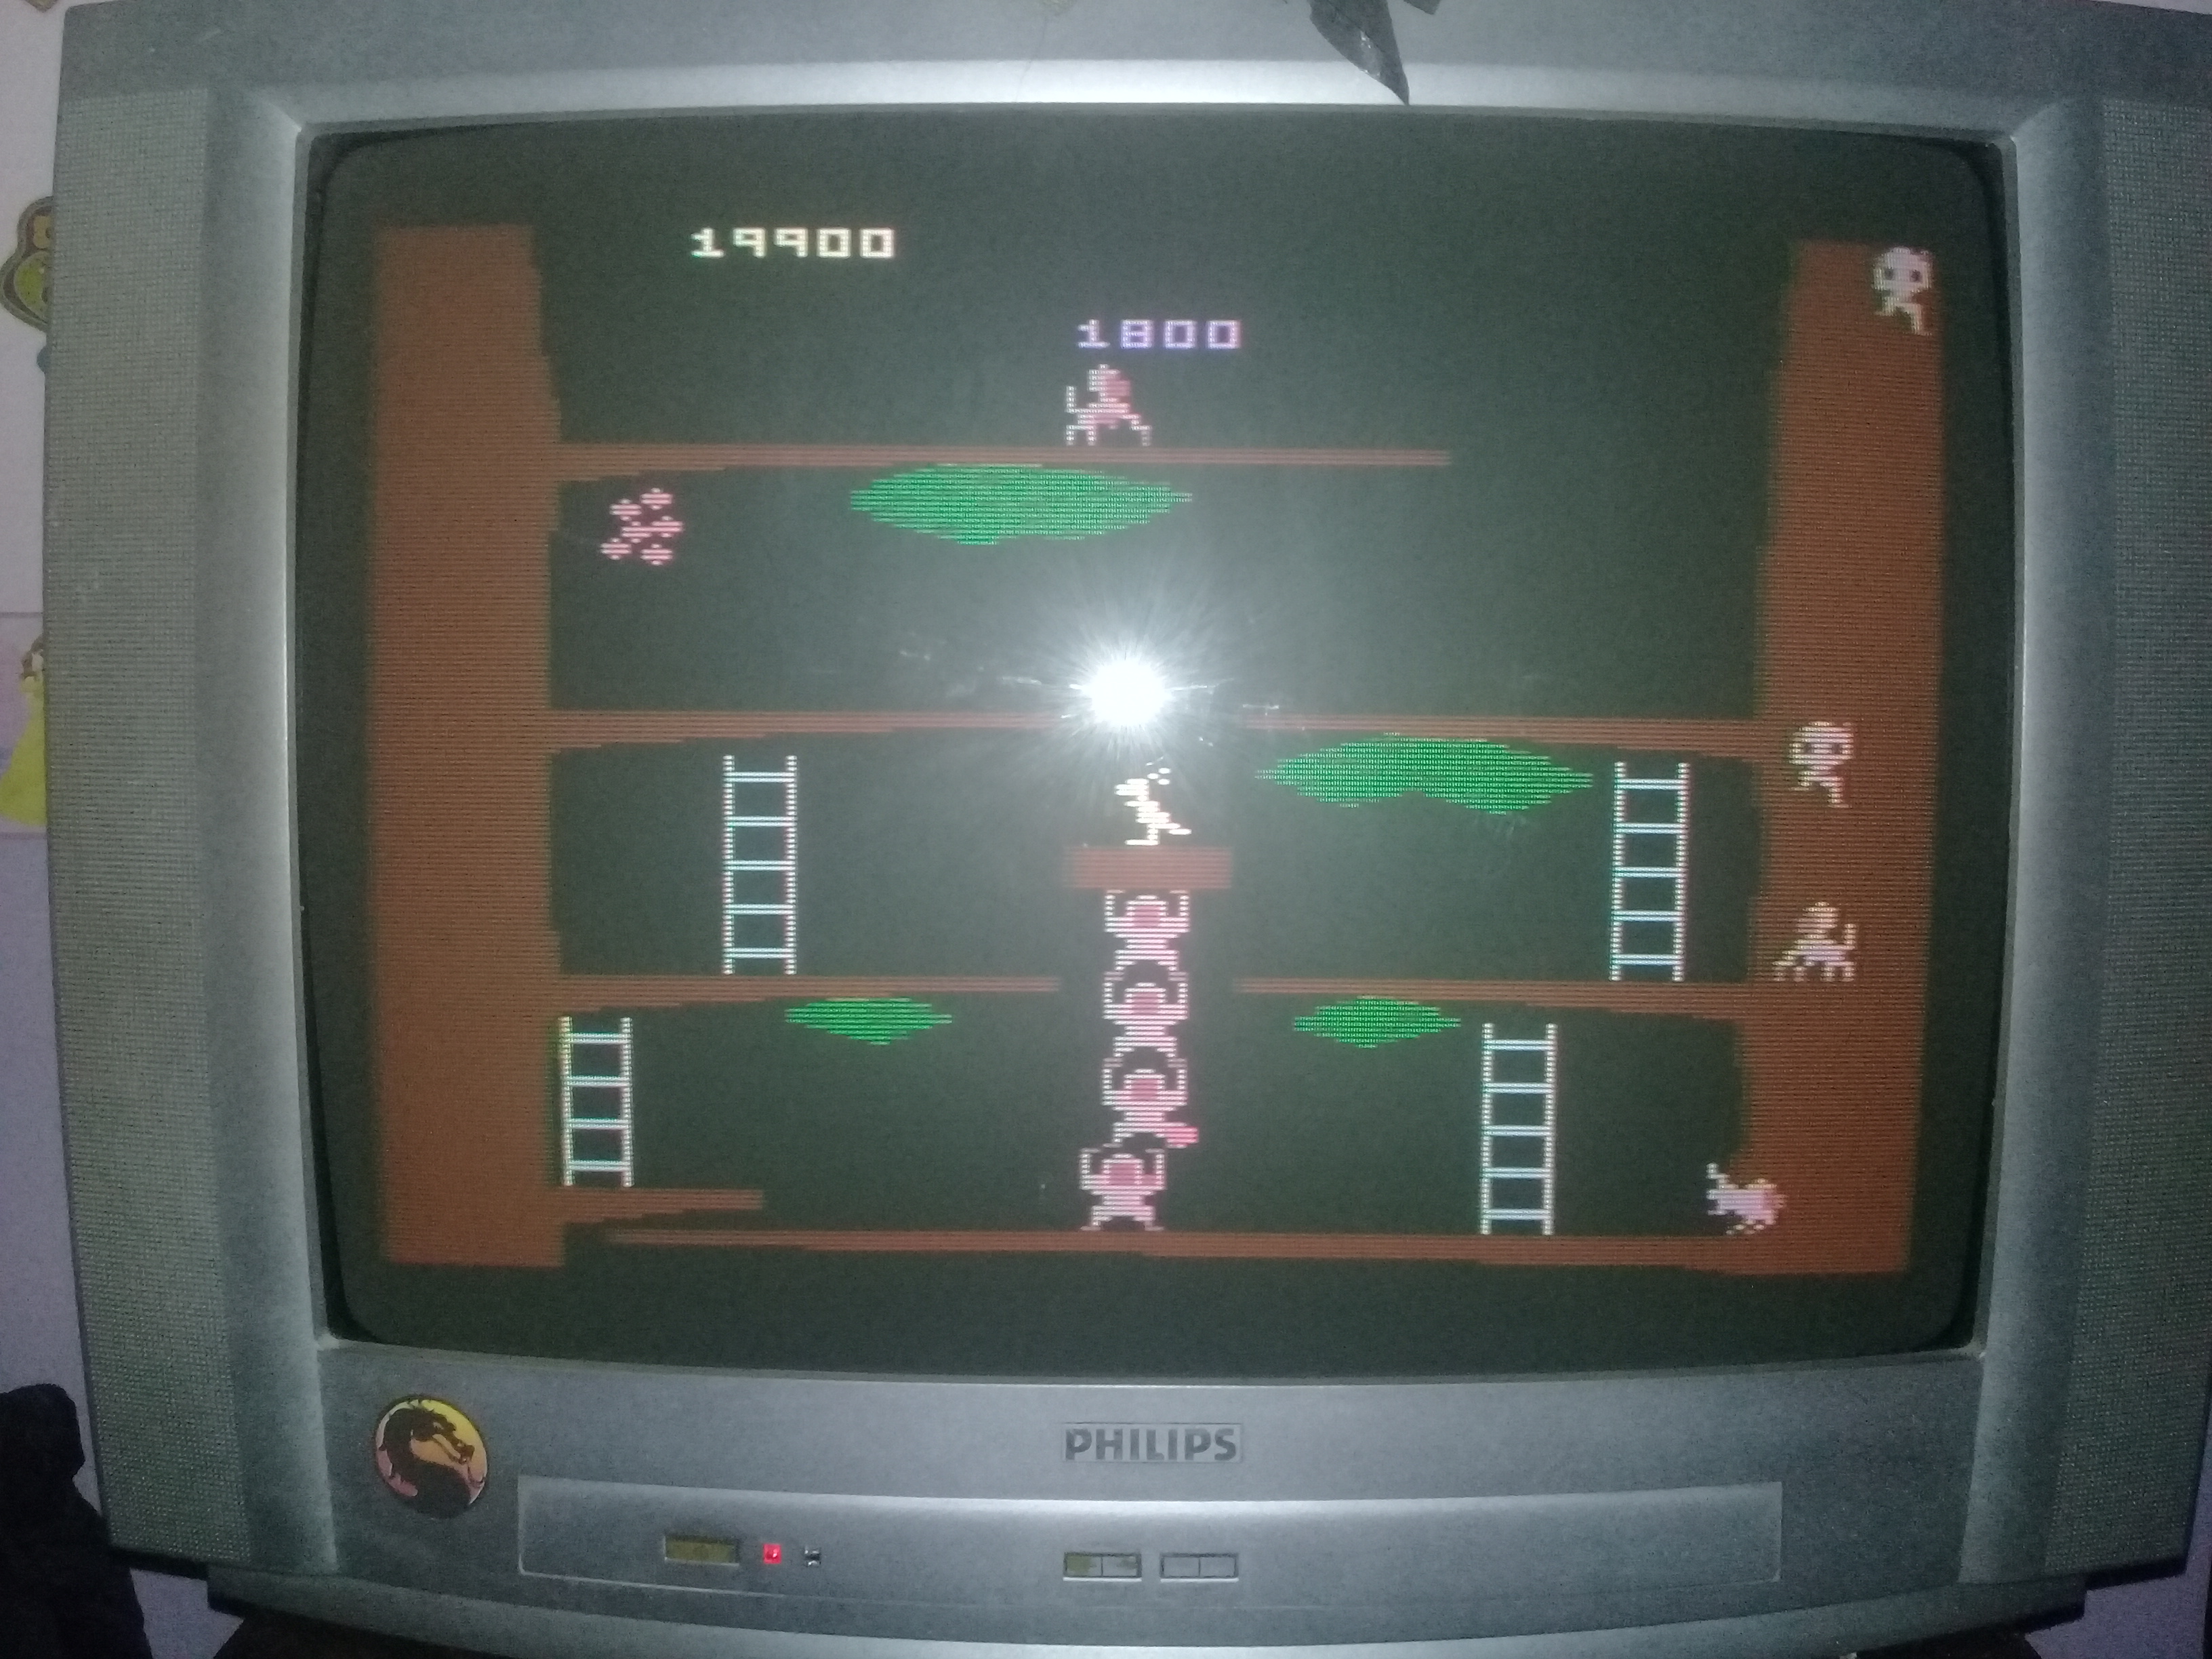 omargeddon: Kangaroo [Advanced] (Atari 400/800/XL/XE) 19,900 points on 2020-03-31 19:51:44